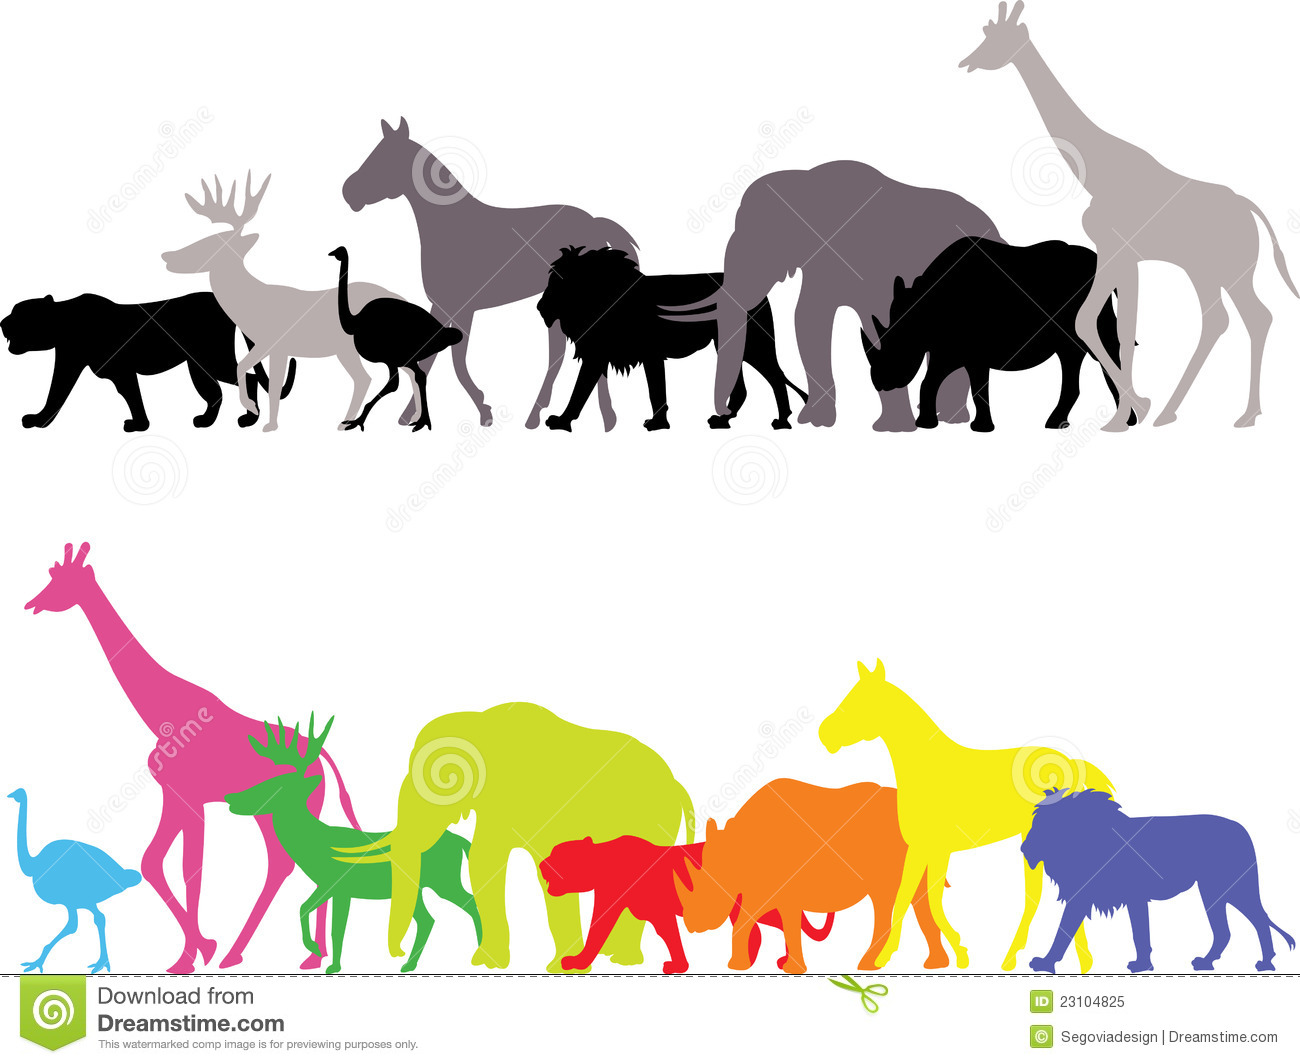 Wild Animal Silhouette Royalty Free Stock Photo - Image: 23104825